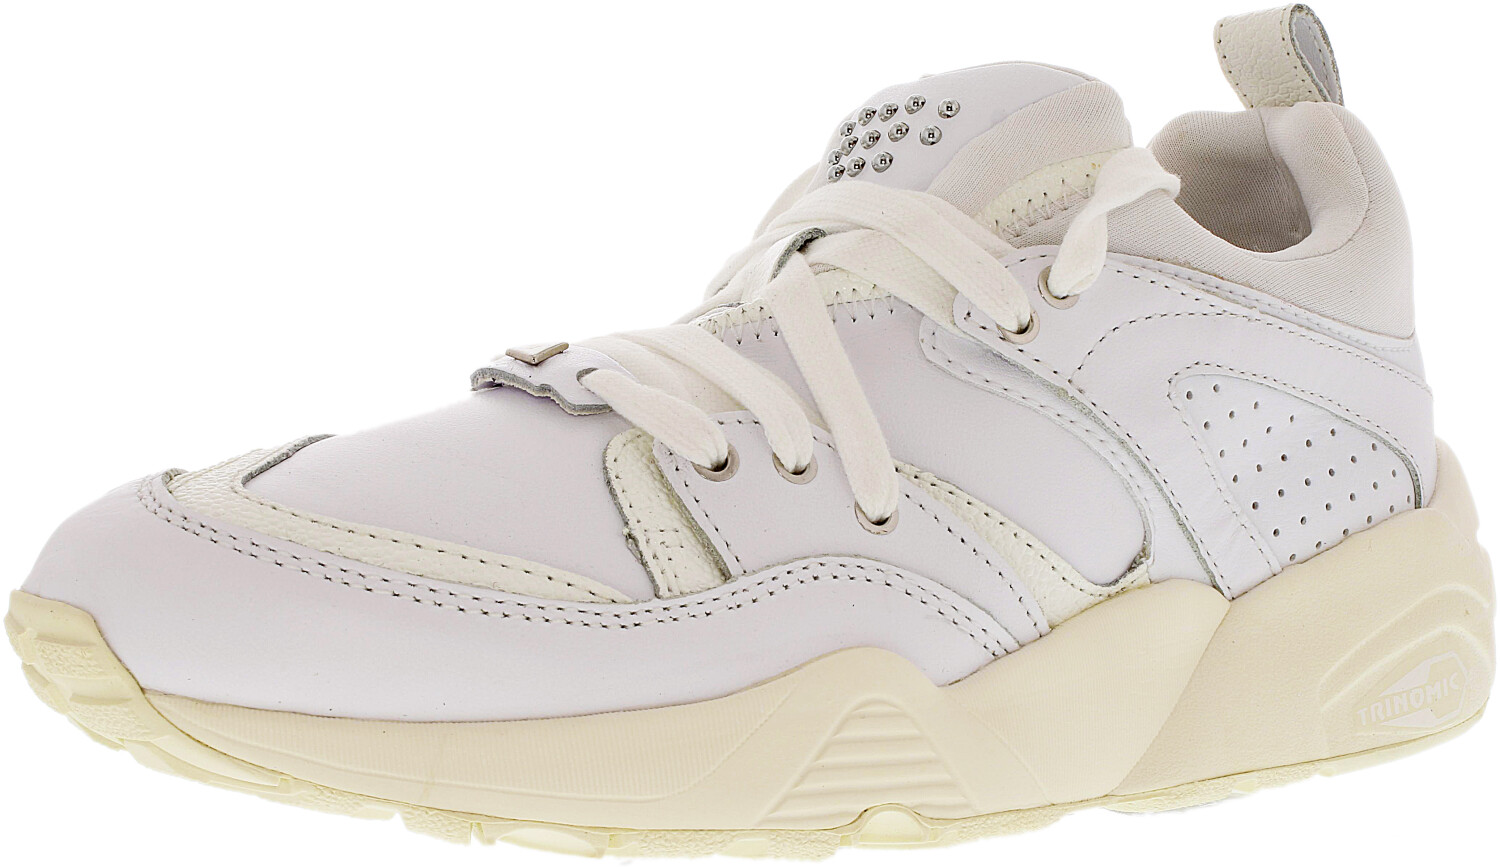 Puma Women's Blaze Of Glory Decor White/Whisper White Ankle-High Sneaker - 6.5M